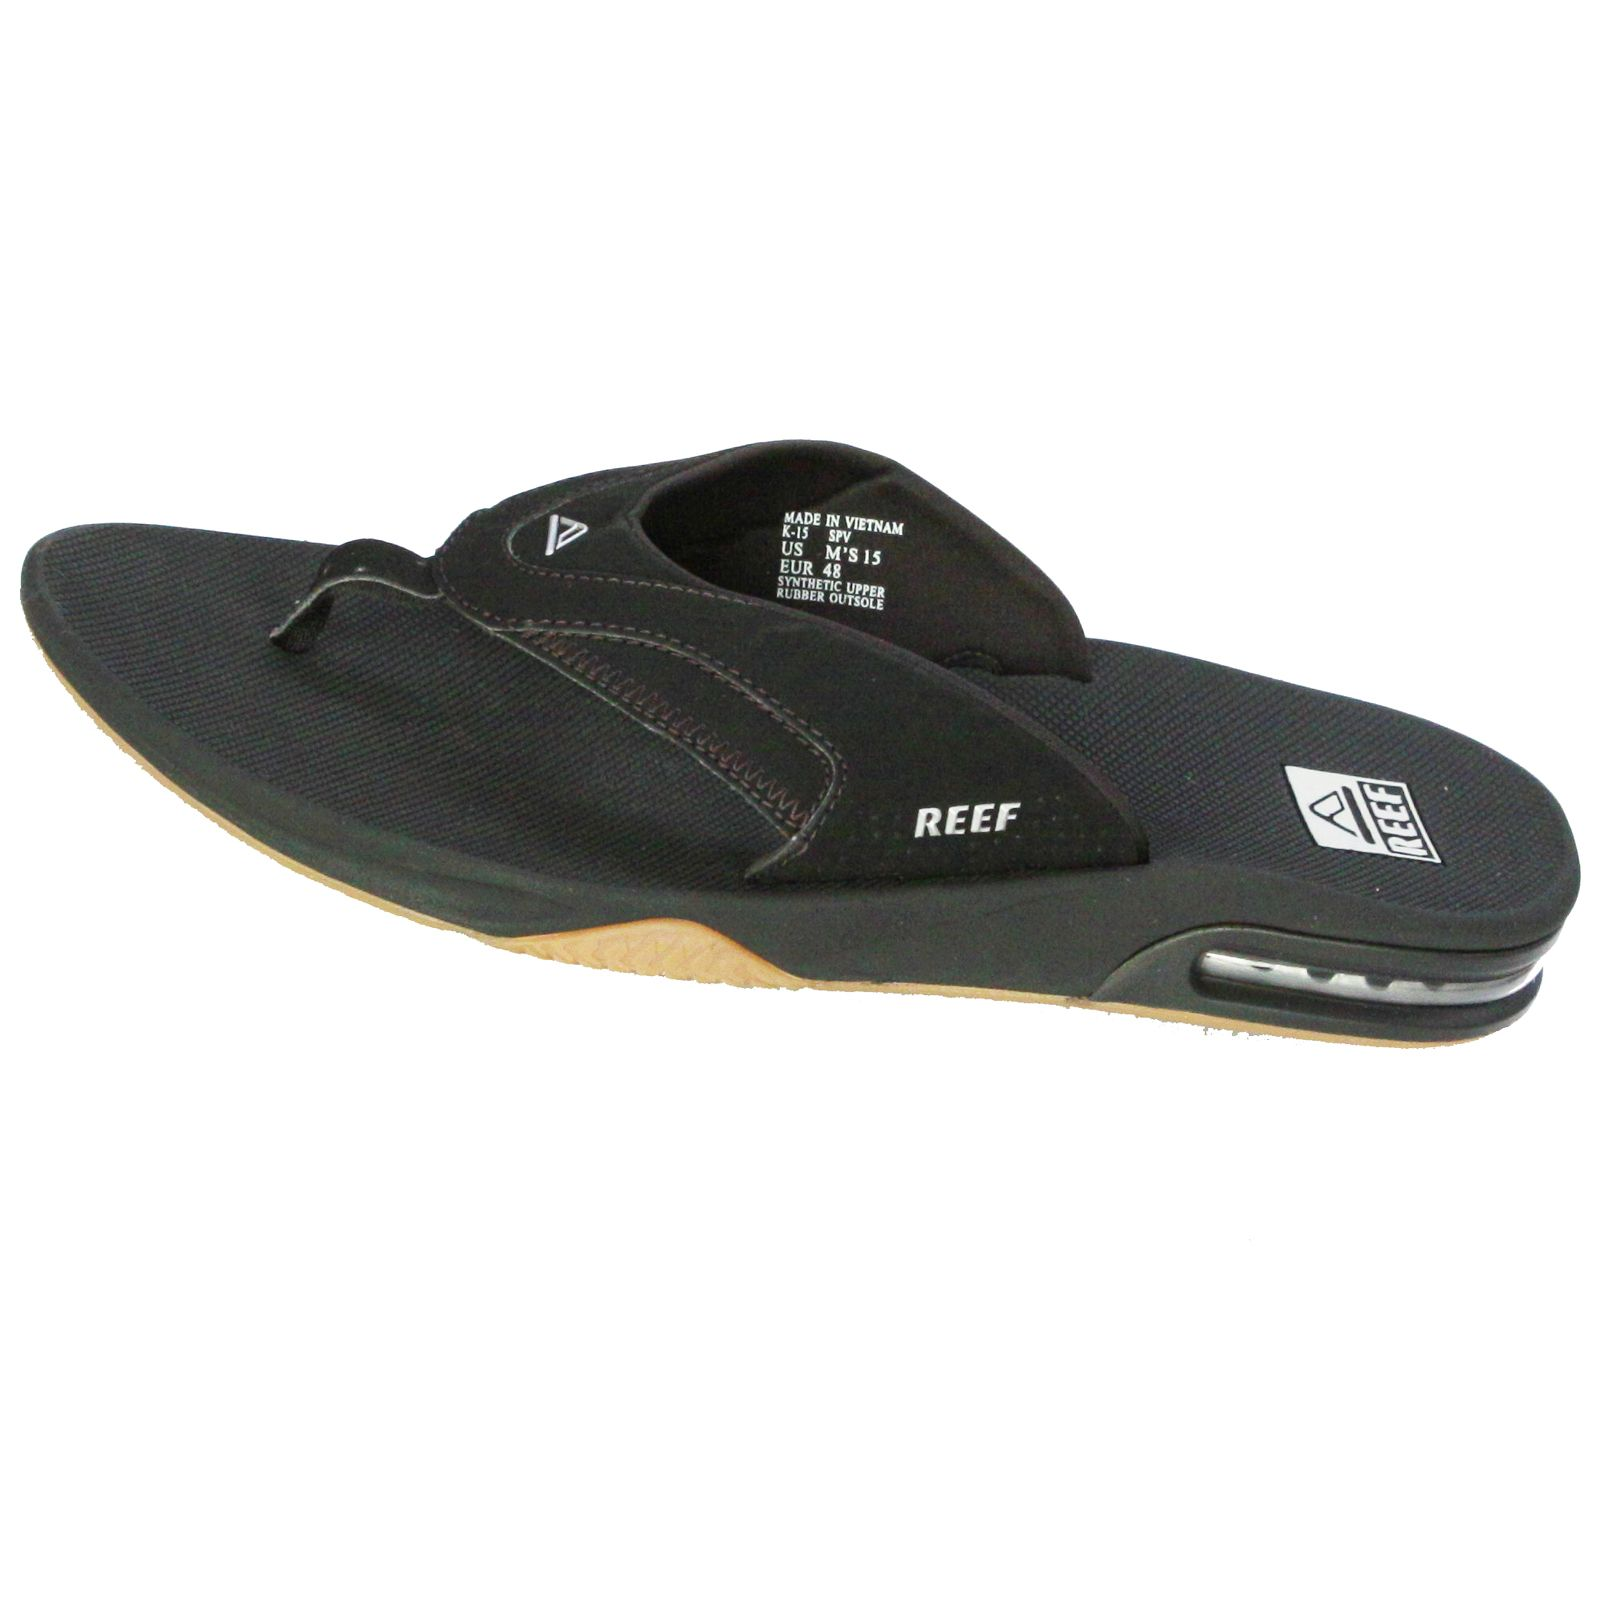 reef water friendly mens sandals with bottle opener fanning black silver ebay. Black Bedroom Furniture Sets. Home Design Ideas